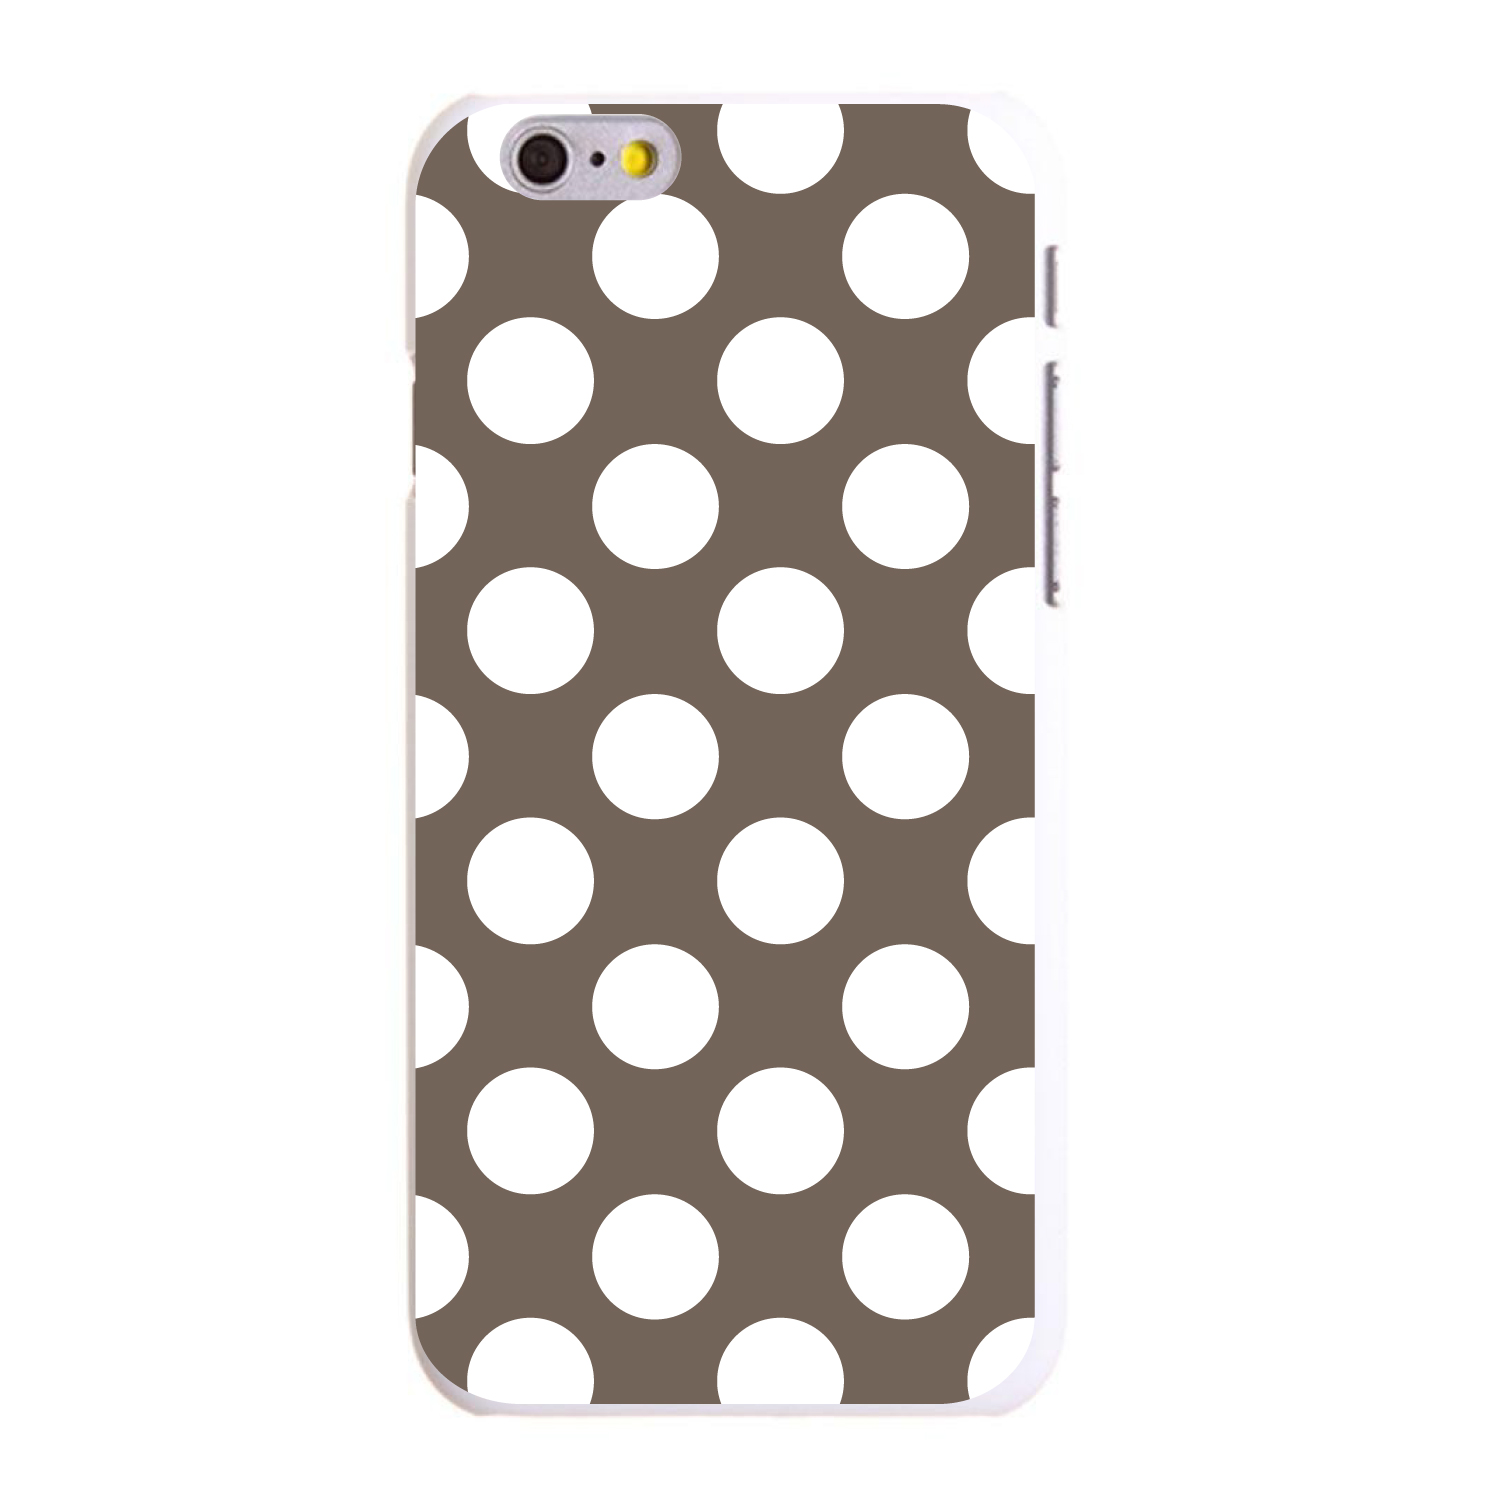 "CUSTOM White Hard Plastic Snap-On Case for Apple iPhone 6 / 6S (4.7"" Screen) - White & Taupe Polka Dots"